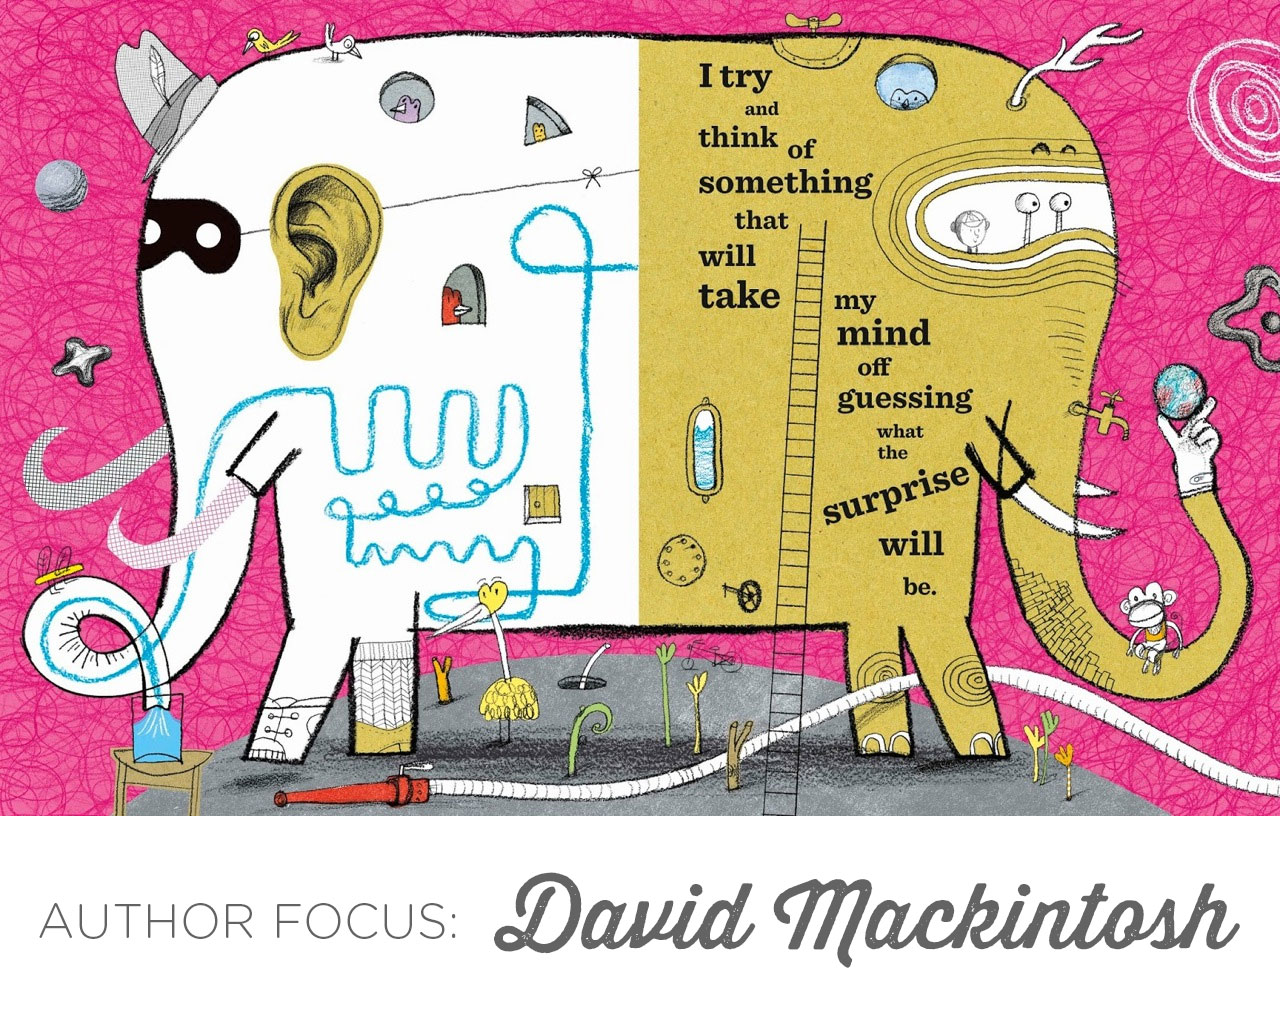 Author Focus: David Mackintosh